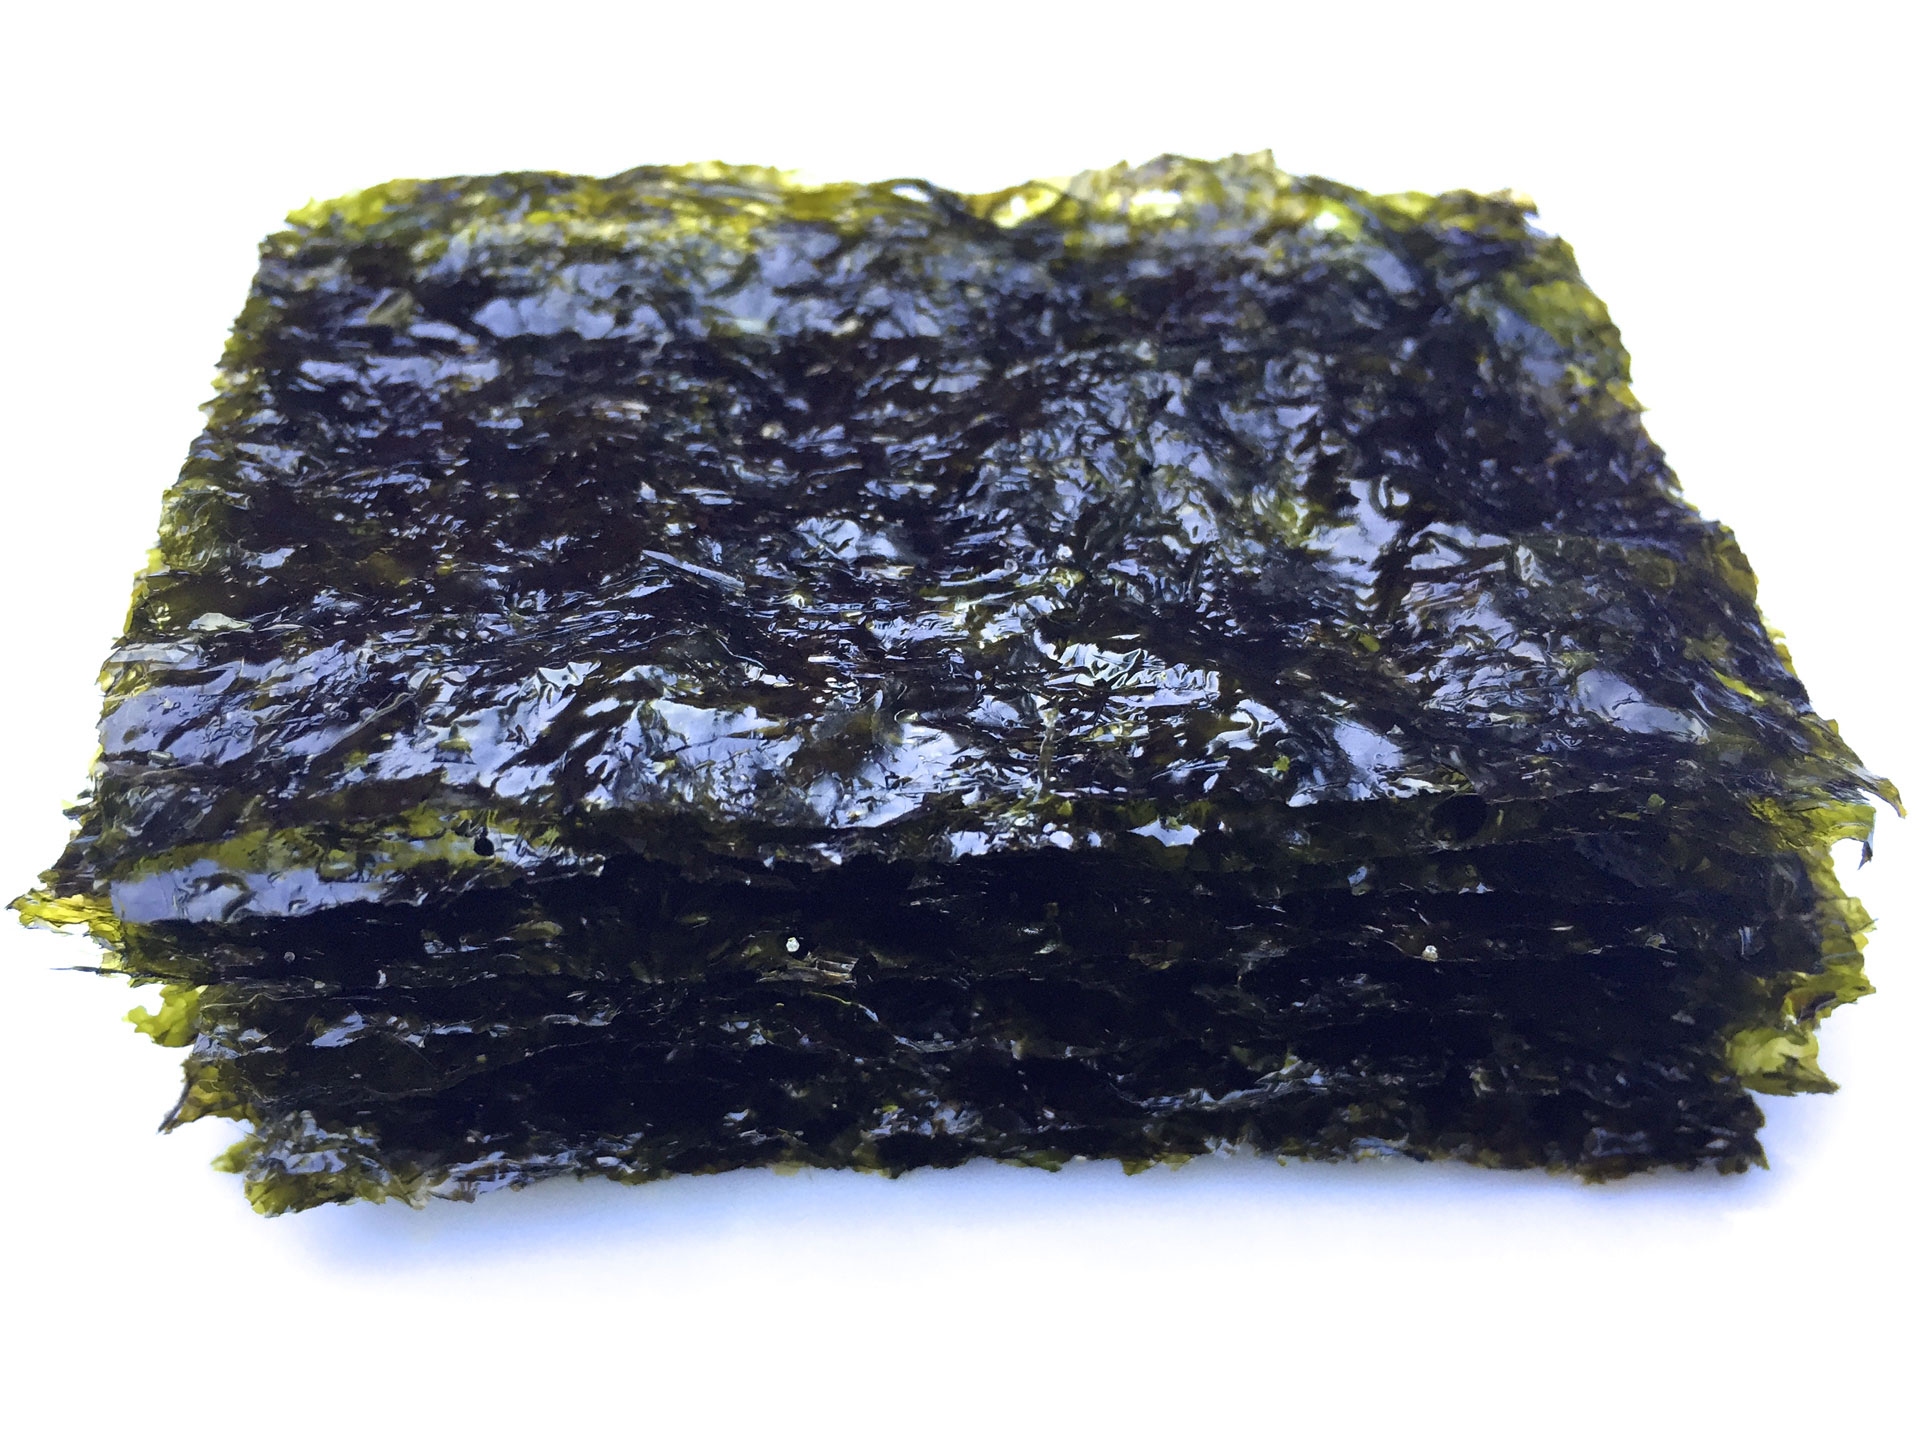 (EnviroNews World News) — Fukushima Prefecture, Japan — On February 5, 2018, a mere seven years after a disastrous triple nuclear meltdown, Japan's Fukushima Prefecture is once again harvesting and shipping green laver seaweed as a food product. An...